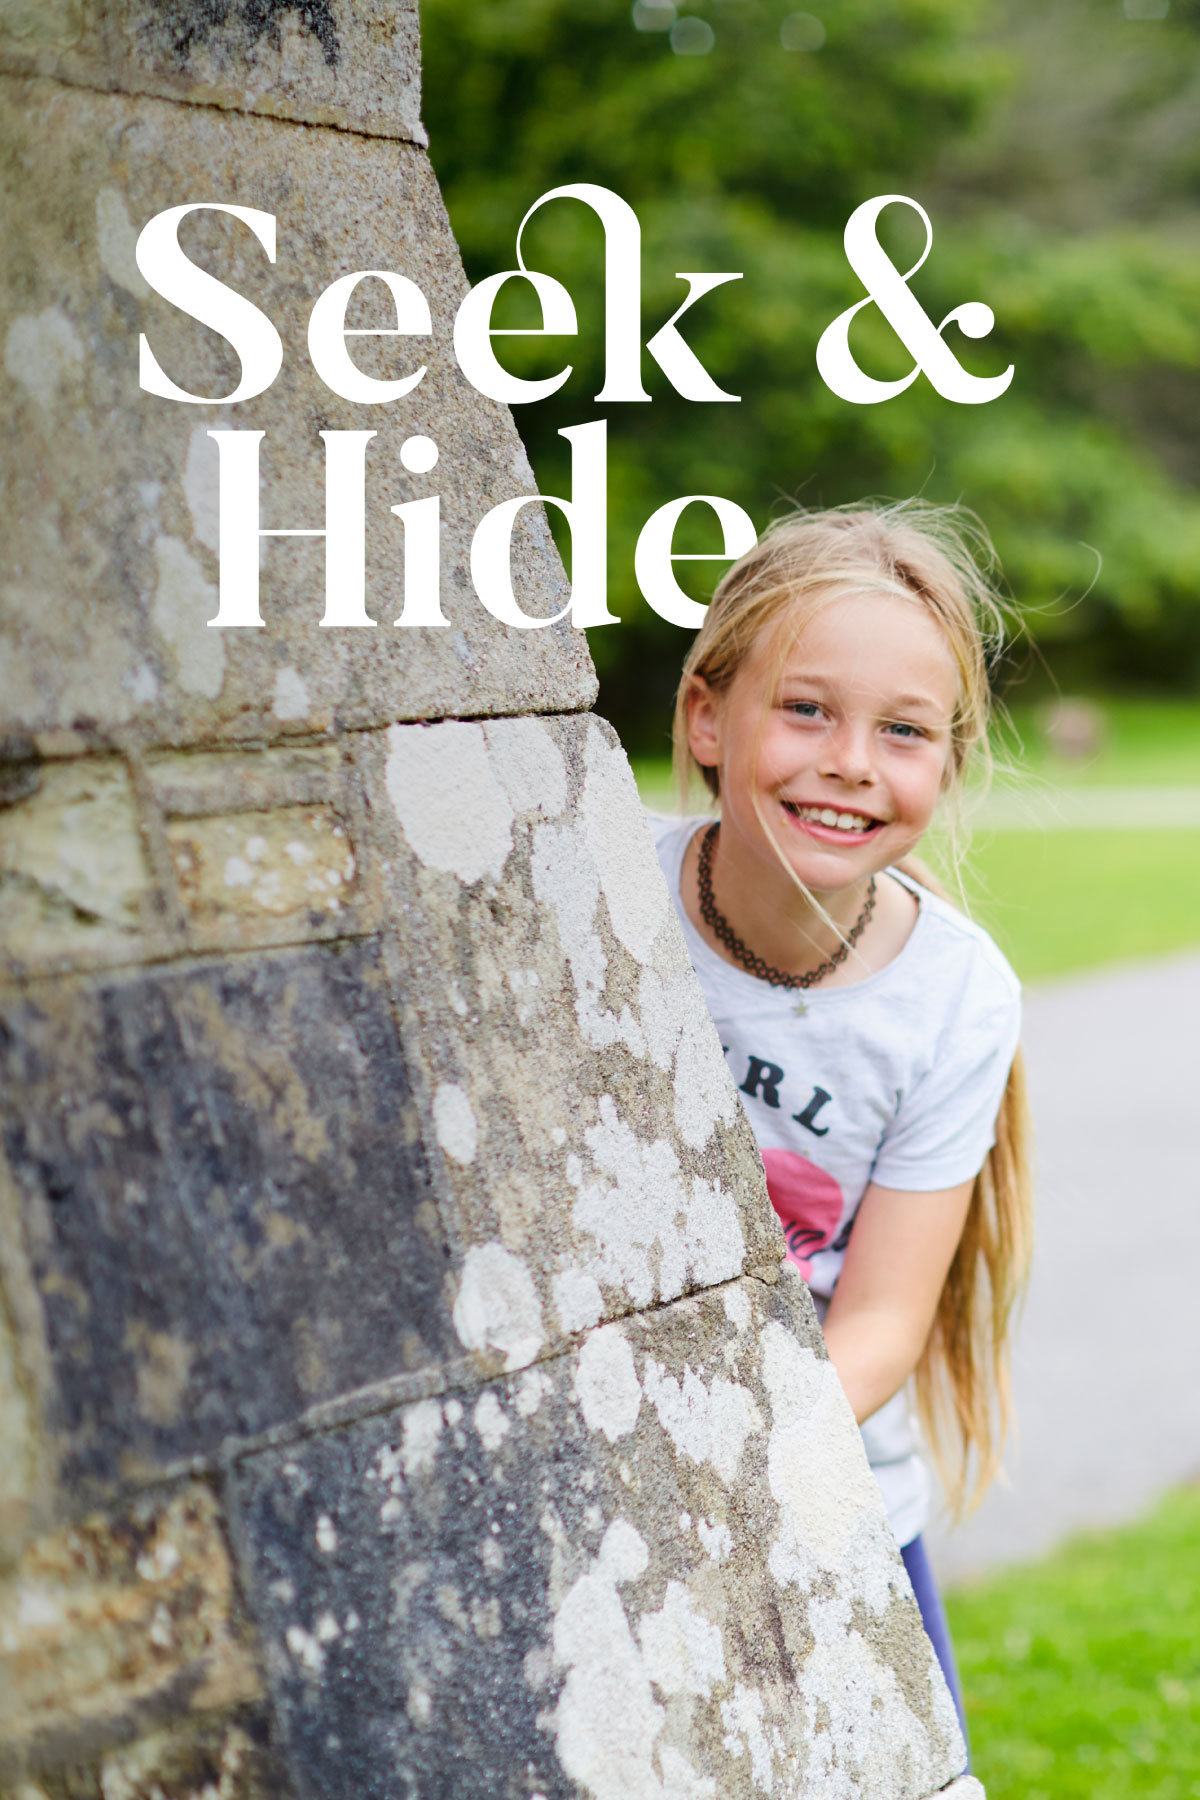 JC_Seek&Hide